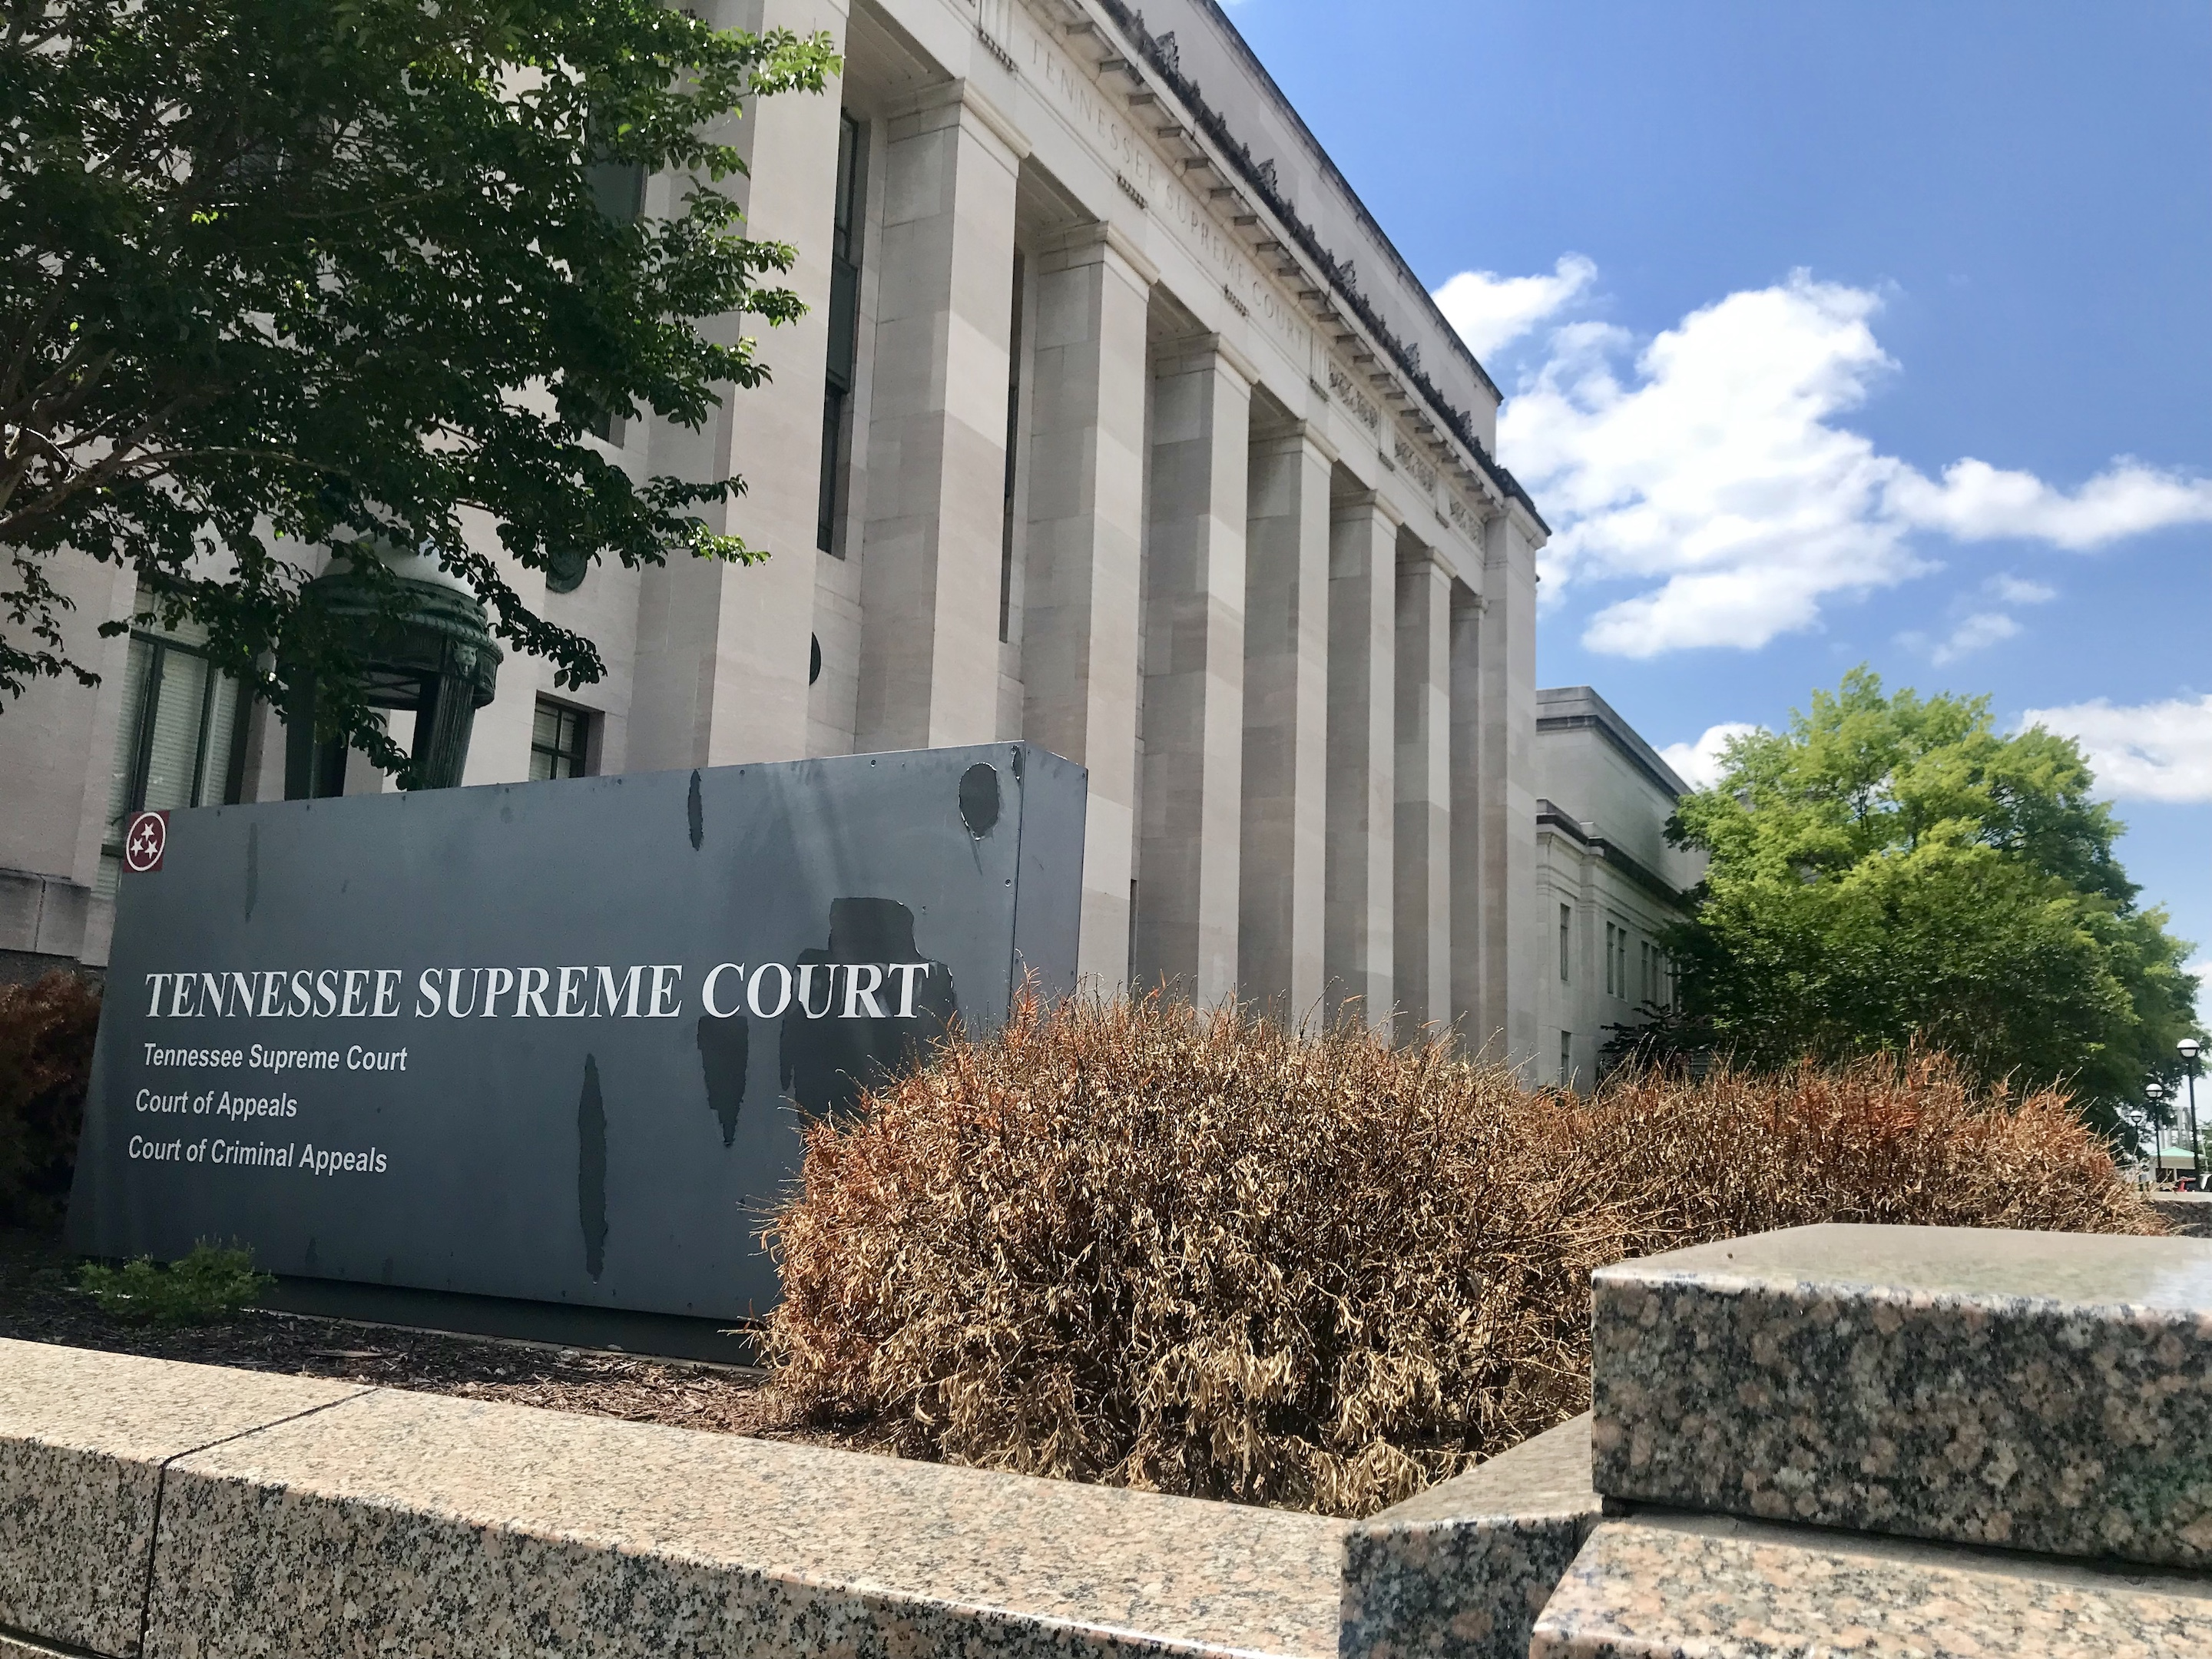 The Tennessee Supreme Court building sits near the state Capitol in Nashville.